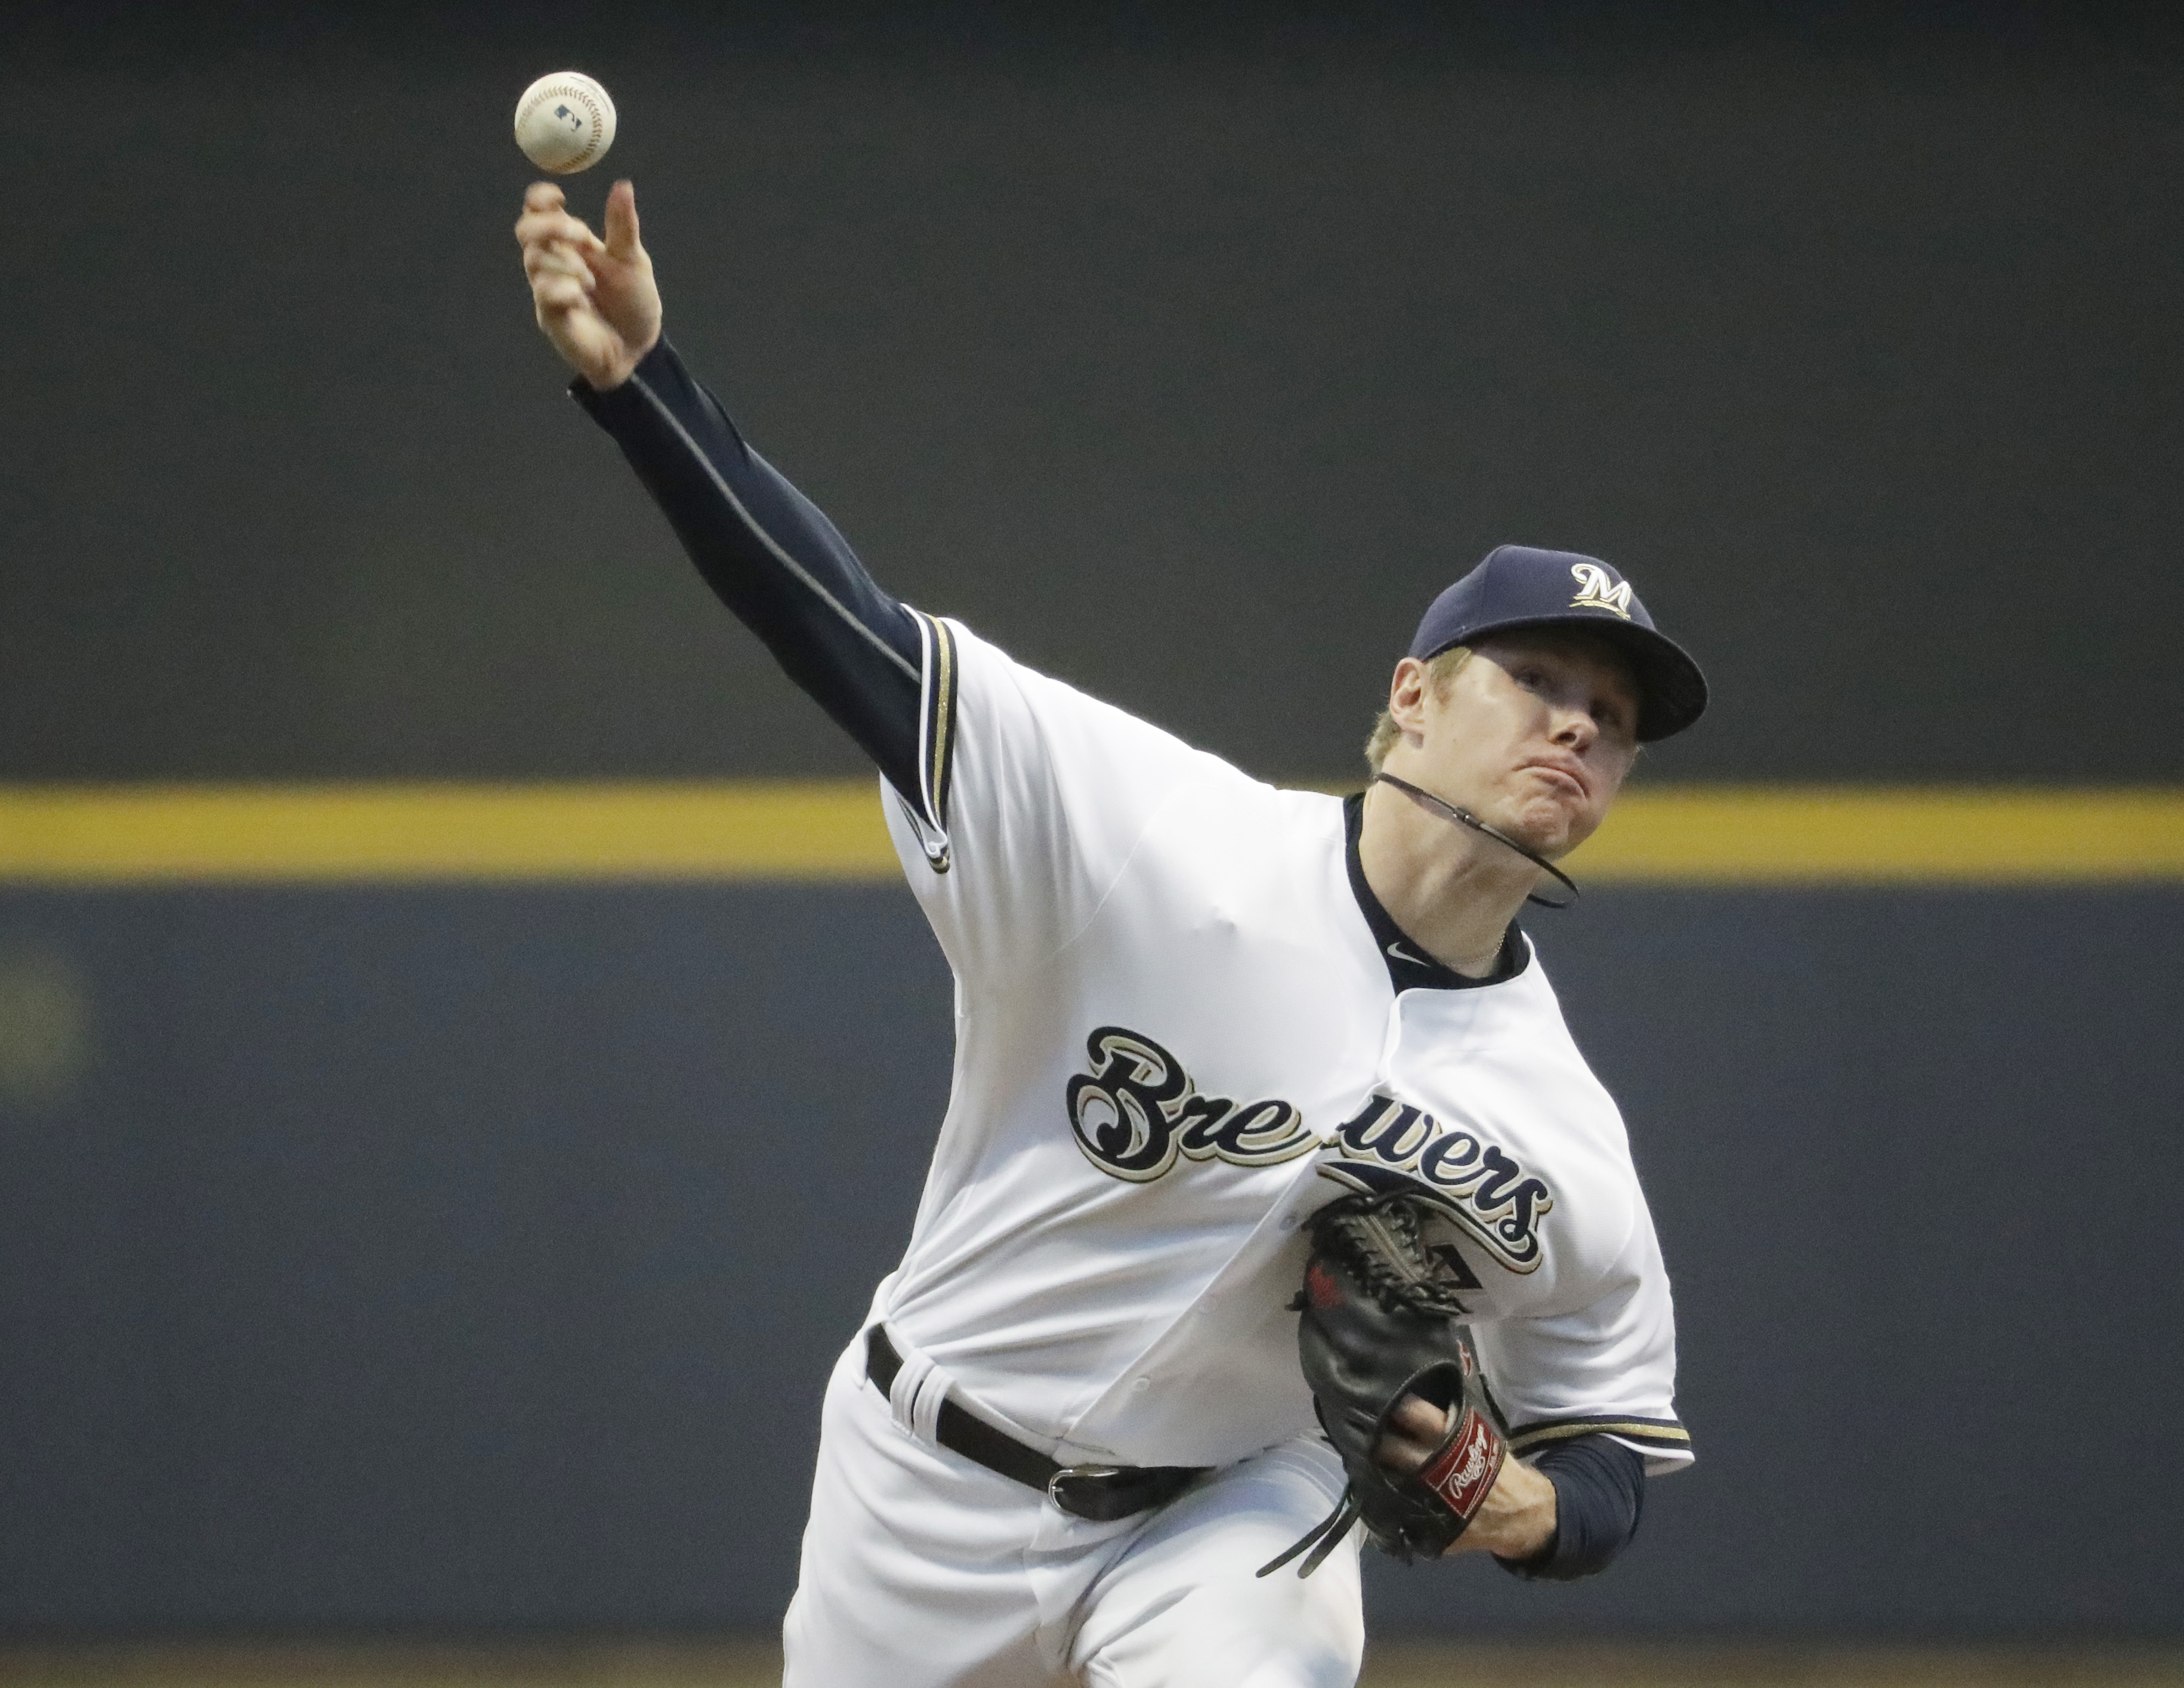 Milwaukee Brewers starting pitcher Chase Anderson throws during the first inning of a baseball game against the Chicago Cubs Tuesday, May 17, 2016, in Milwaukee. (AP Photo/Morry Gash)